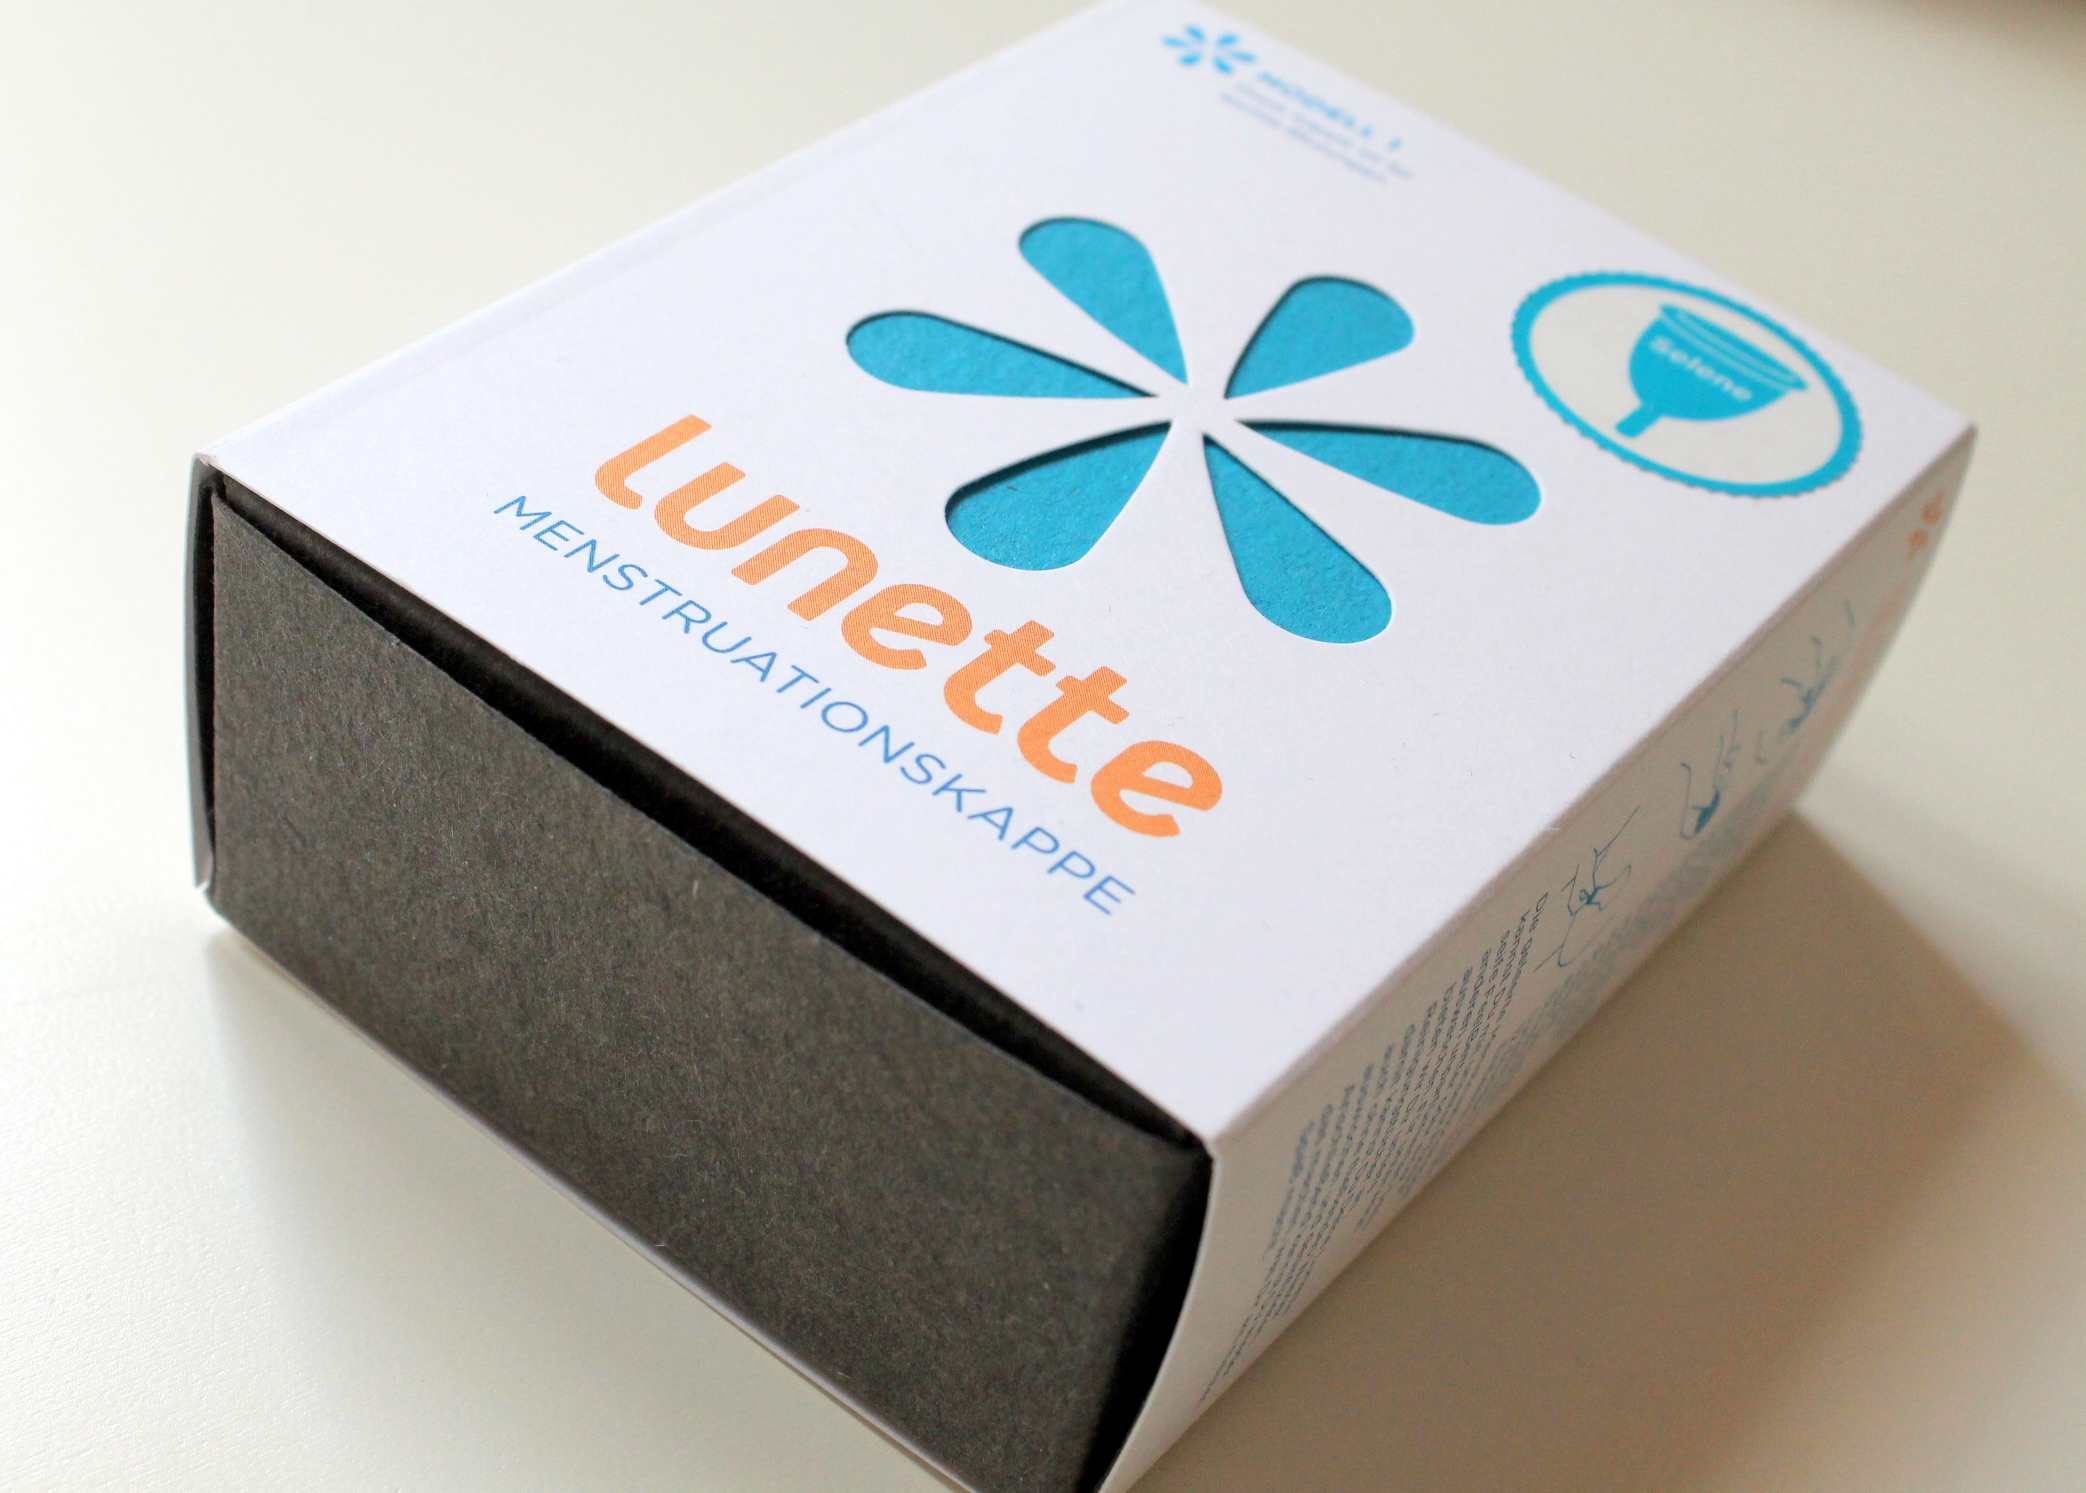 Im TEST | LUNETTE For Nicer Periods